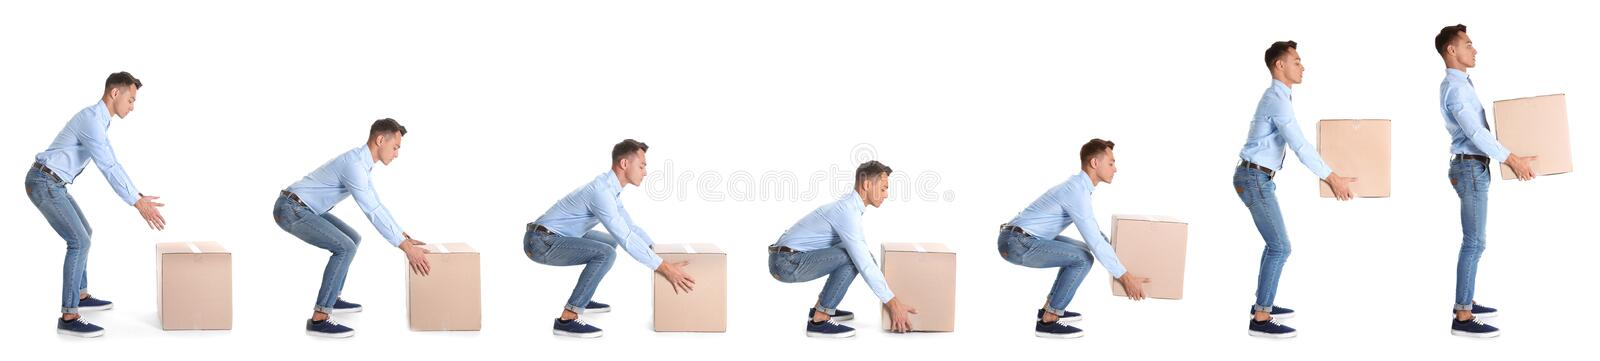 Collage of man lifting heavy cardboard box on white background. Posture concept stock photos